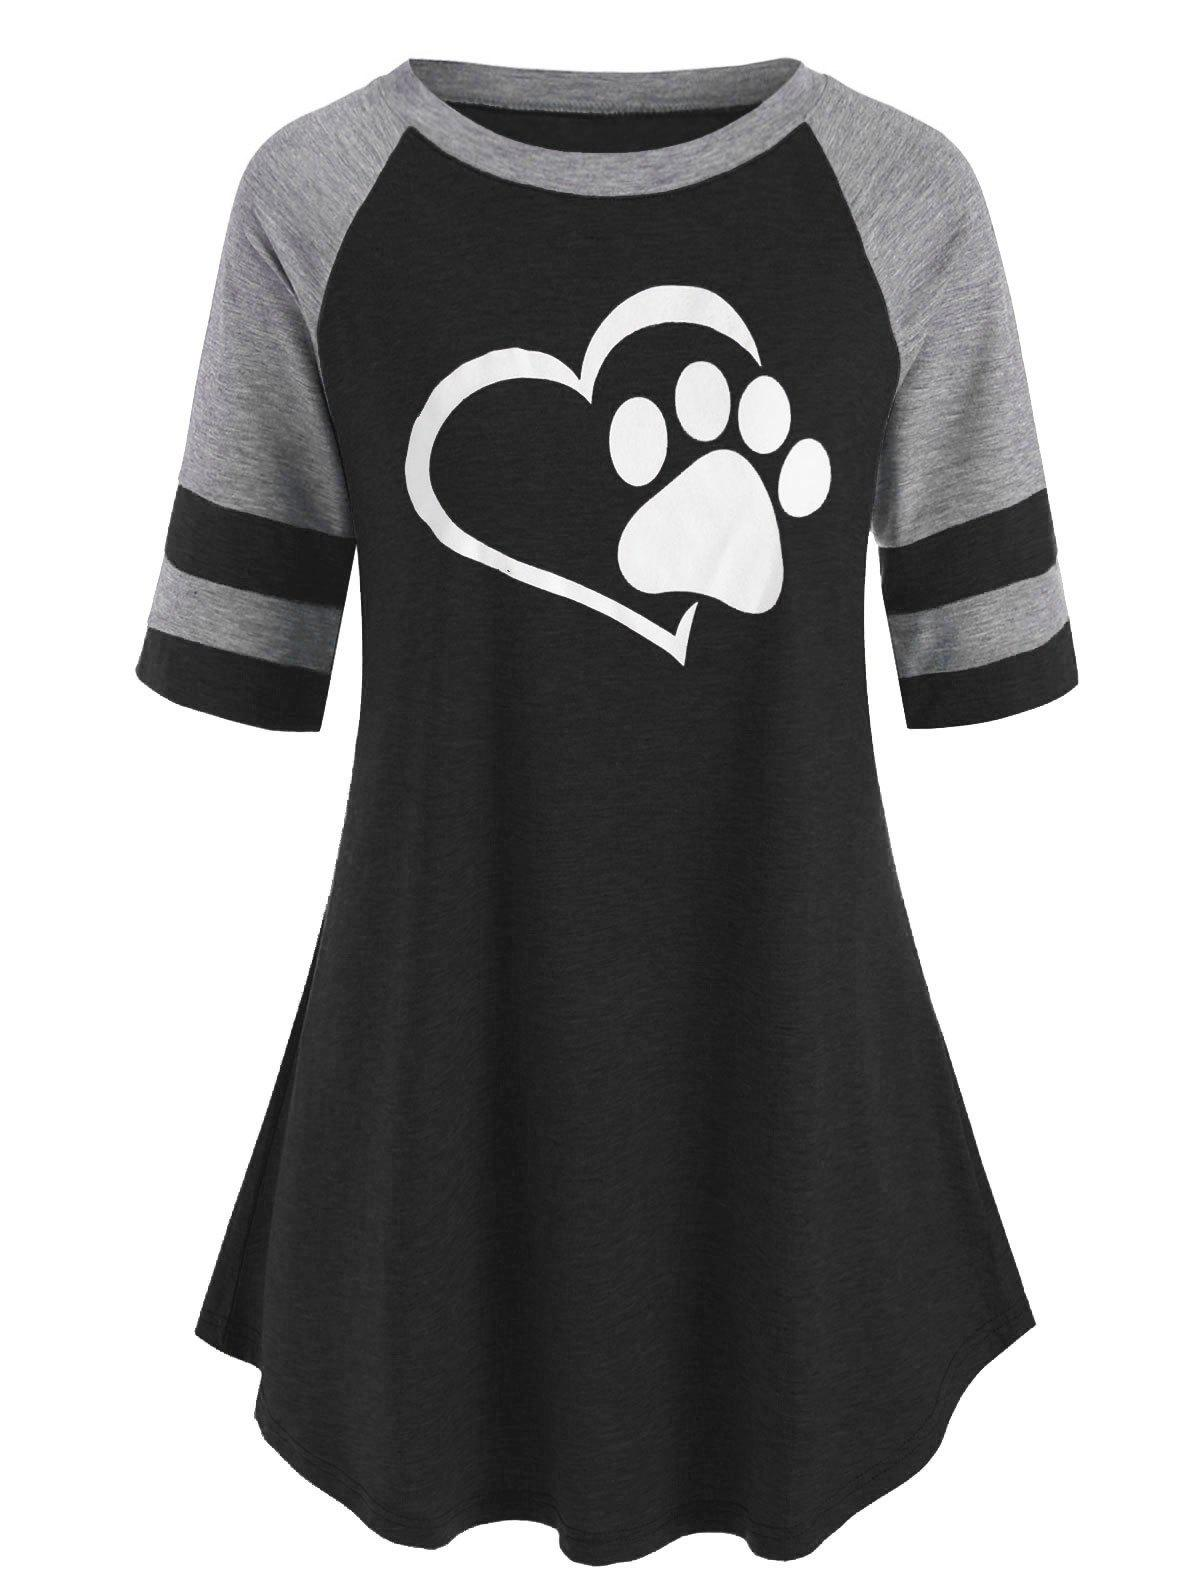 Hot Plus Size Contrast Color Raglan Sleeve Graphic T Shirt